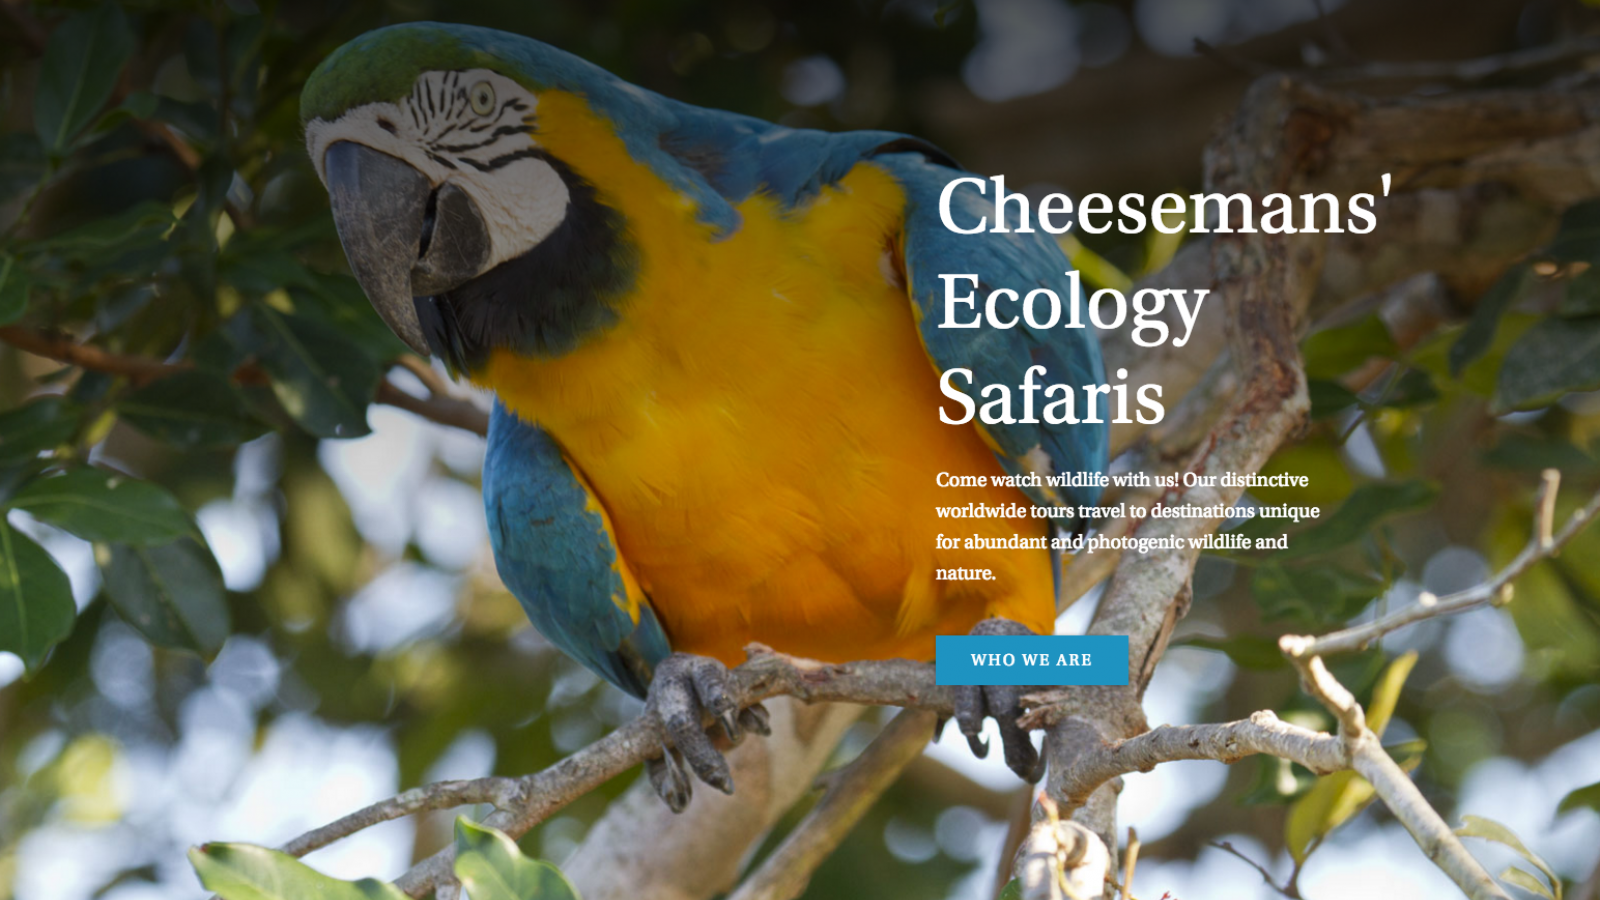 UI/UX Cheesemans' Ecology Safaris